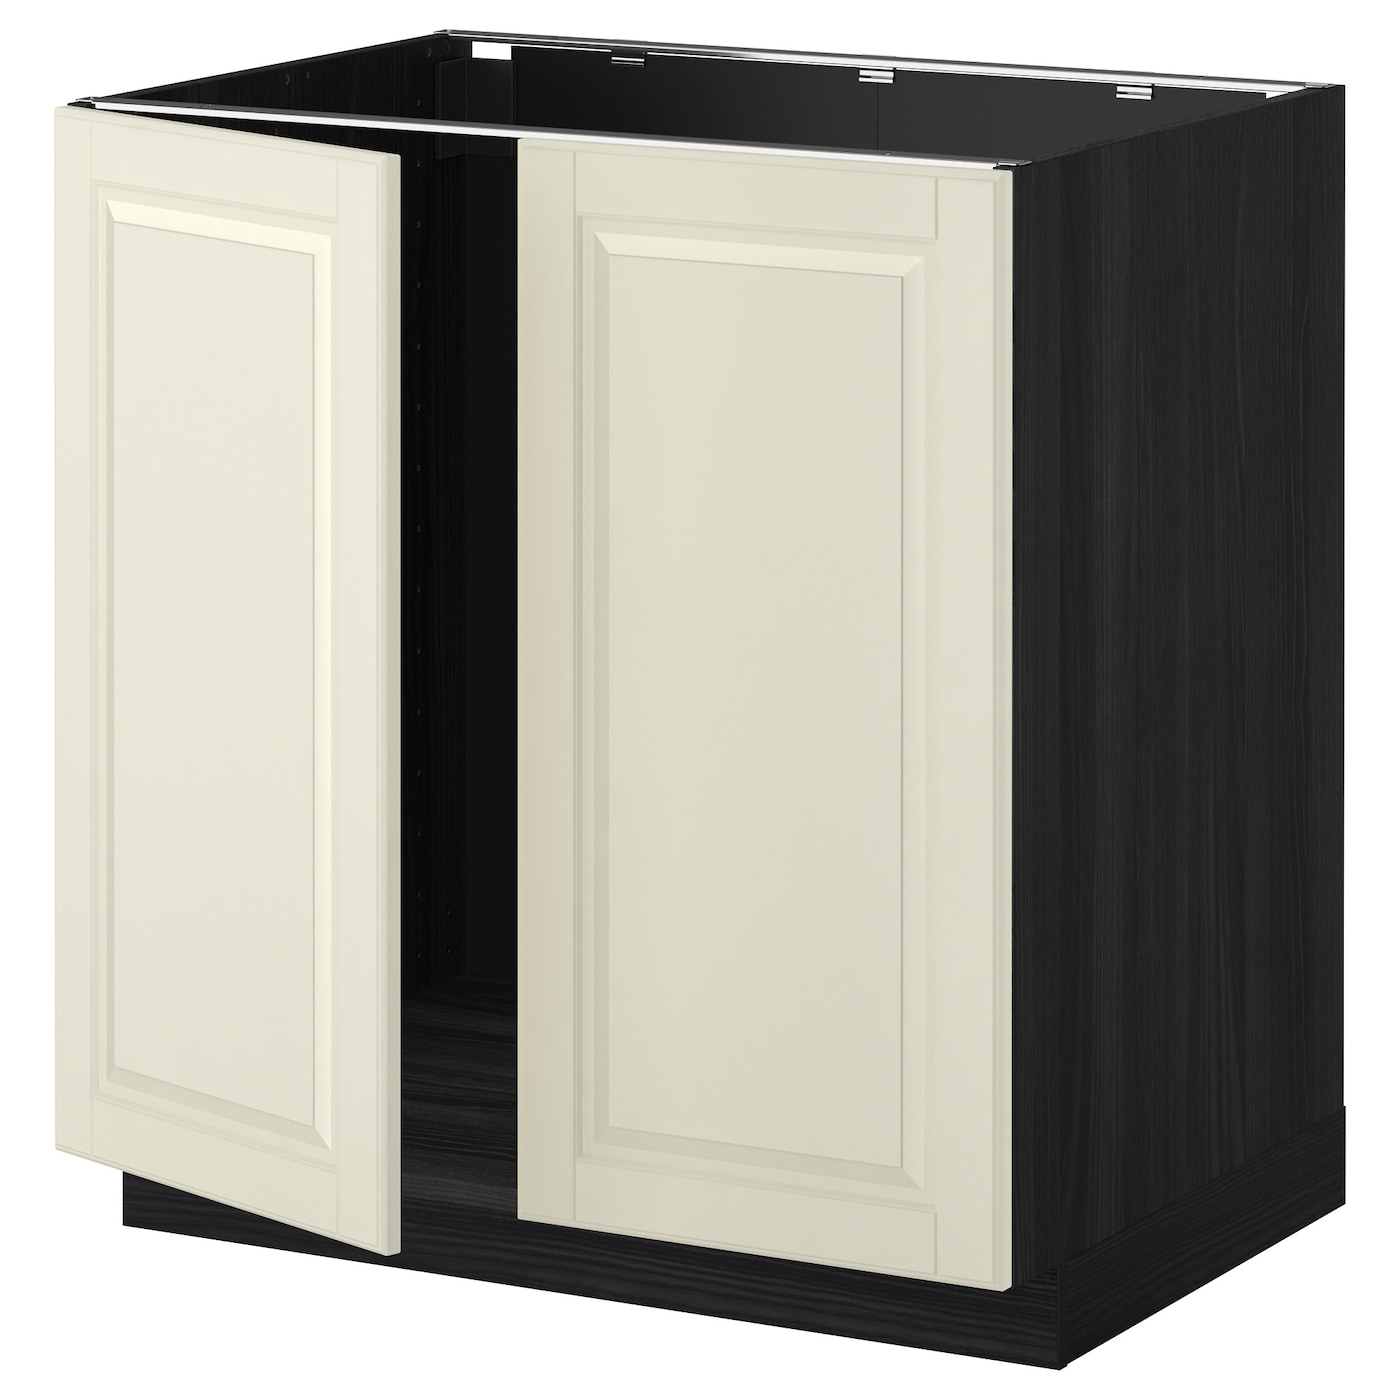 Metod base cabinet for sink 2 doors black bodbyn off for White cabinets with black doors